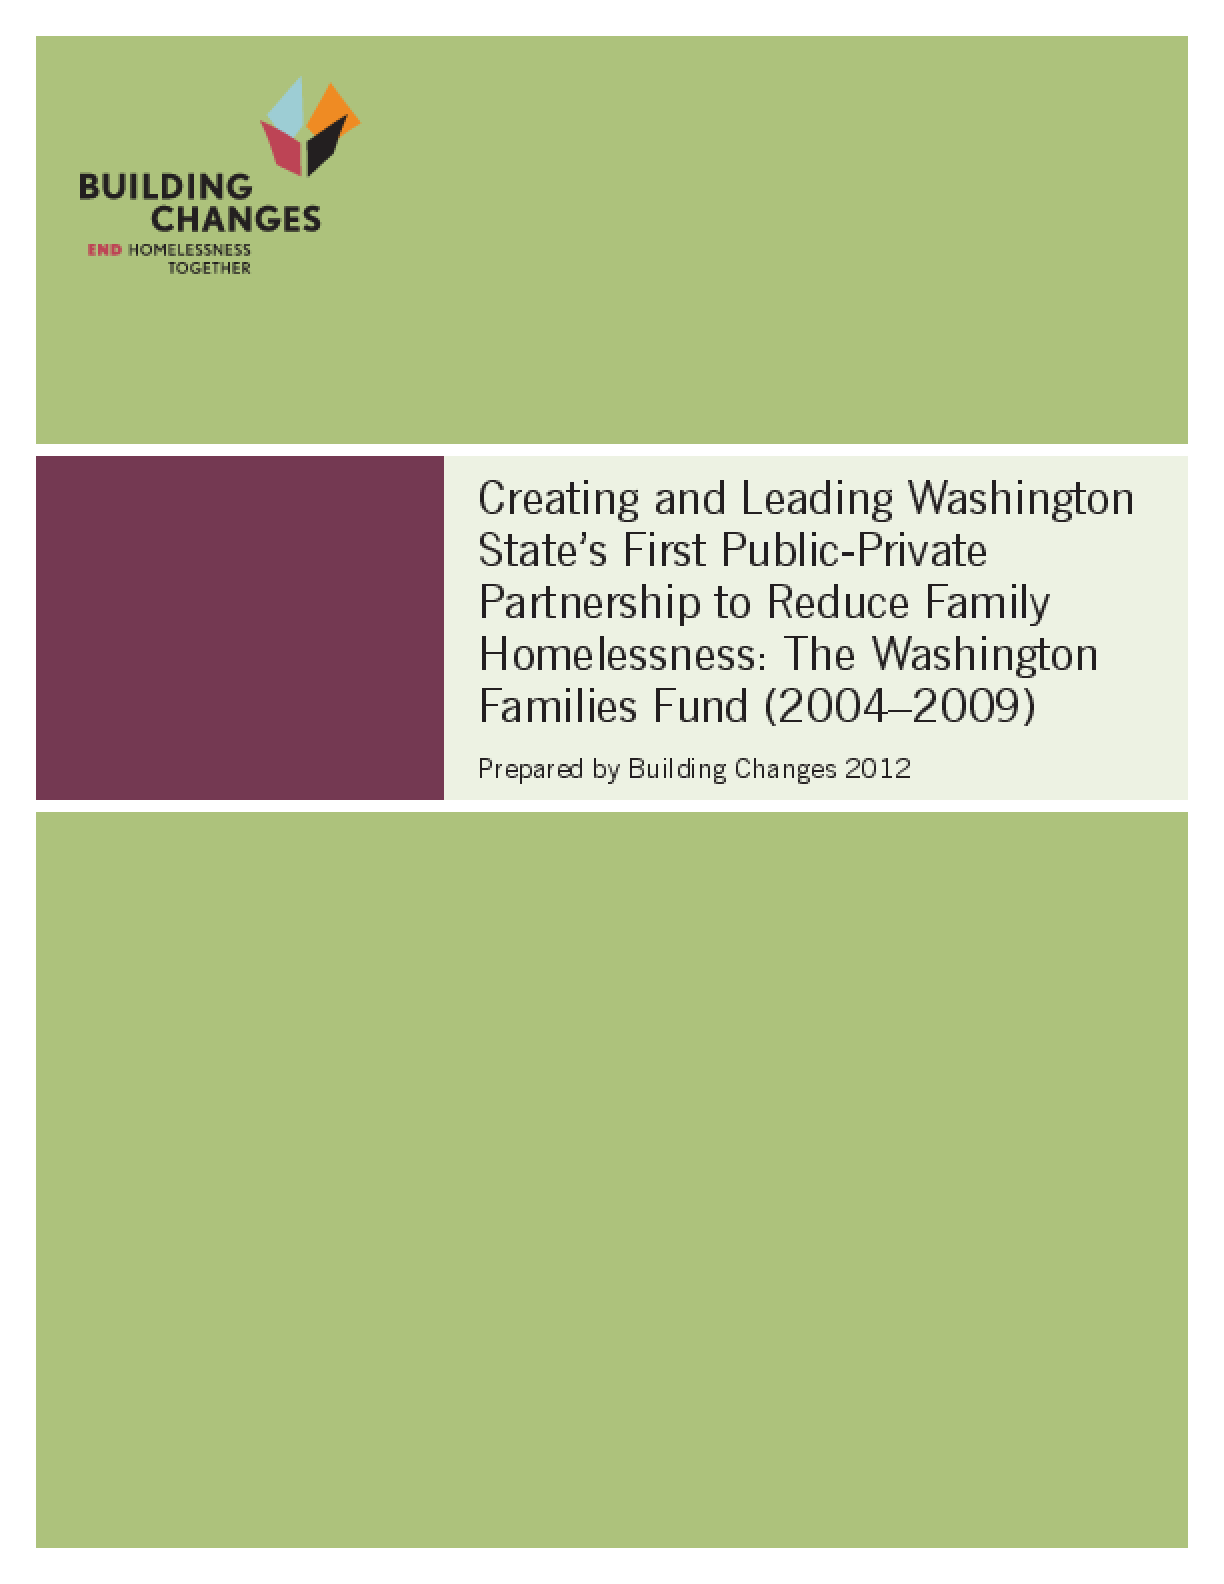 Creating and Leading Washington State's First Public-Private Partnership to Reduce Family Homelessness: The Washington Families Fund (2004-2009)